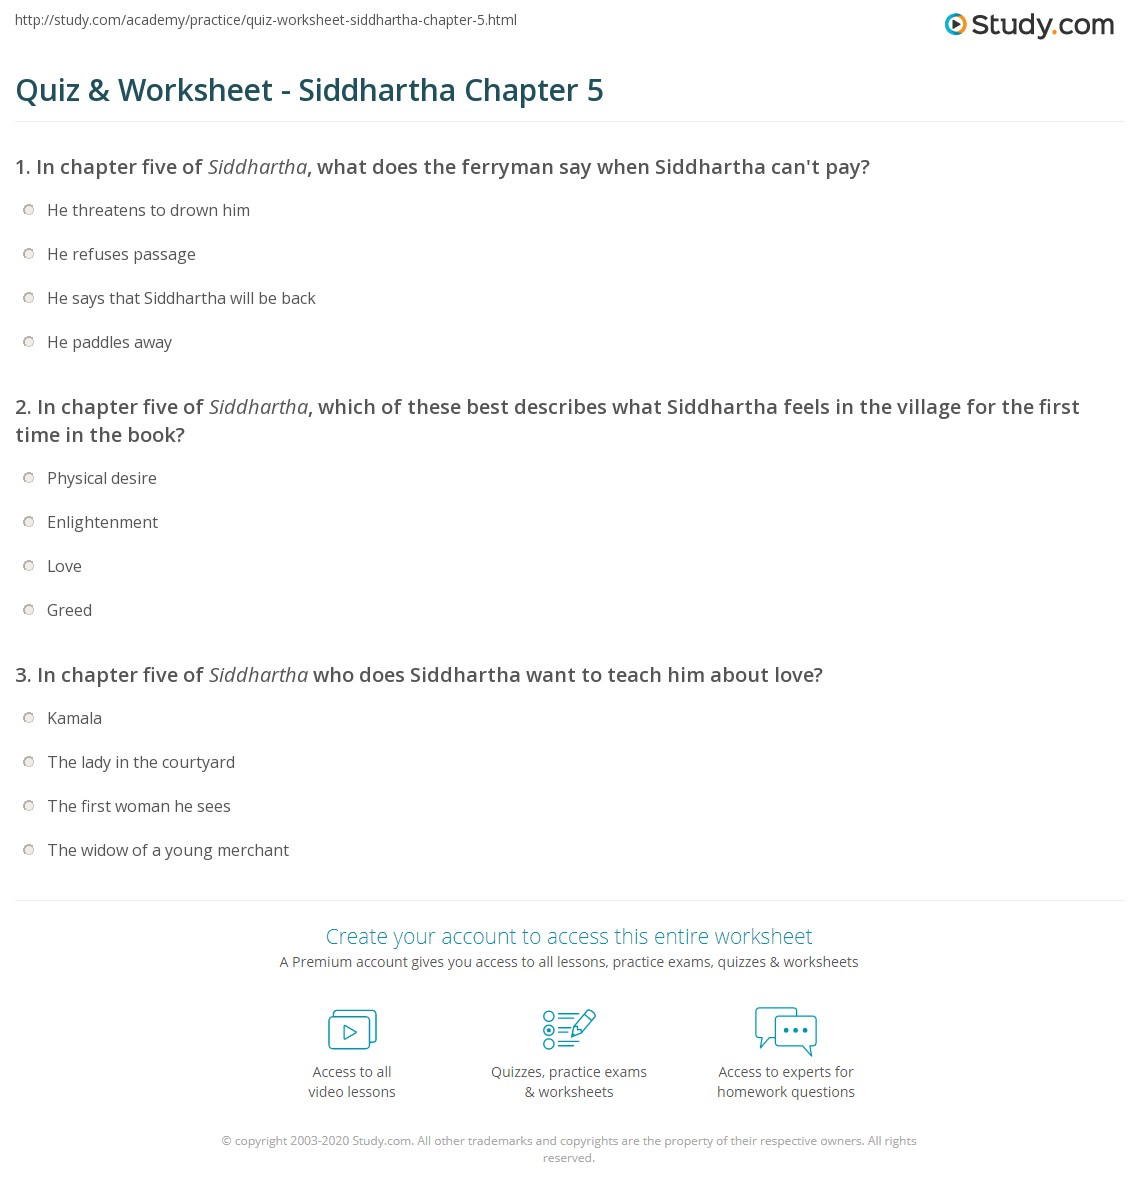 quiz worksheet siddhartha chapter 5 study com rh study com Anthem Study Guide Questions siddhartha discussion questions and answers